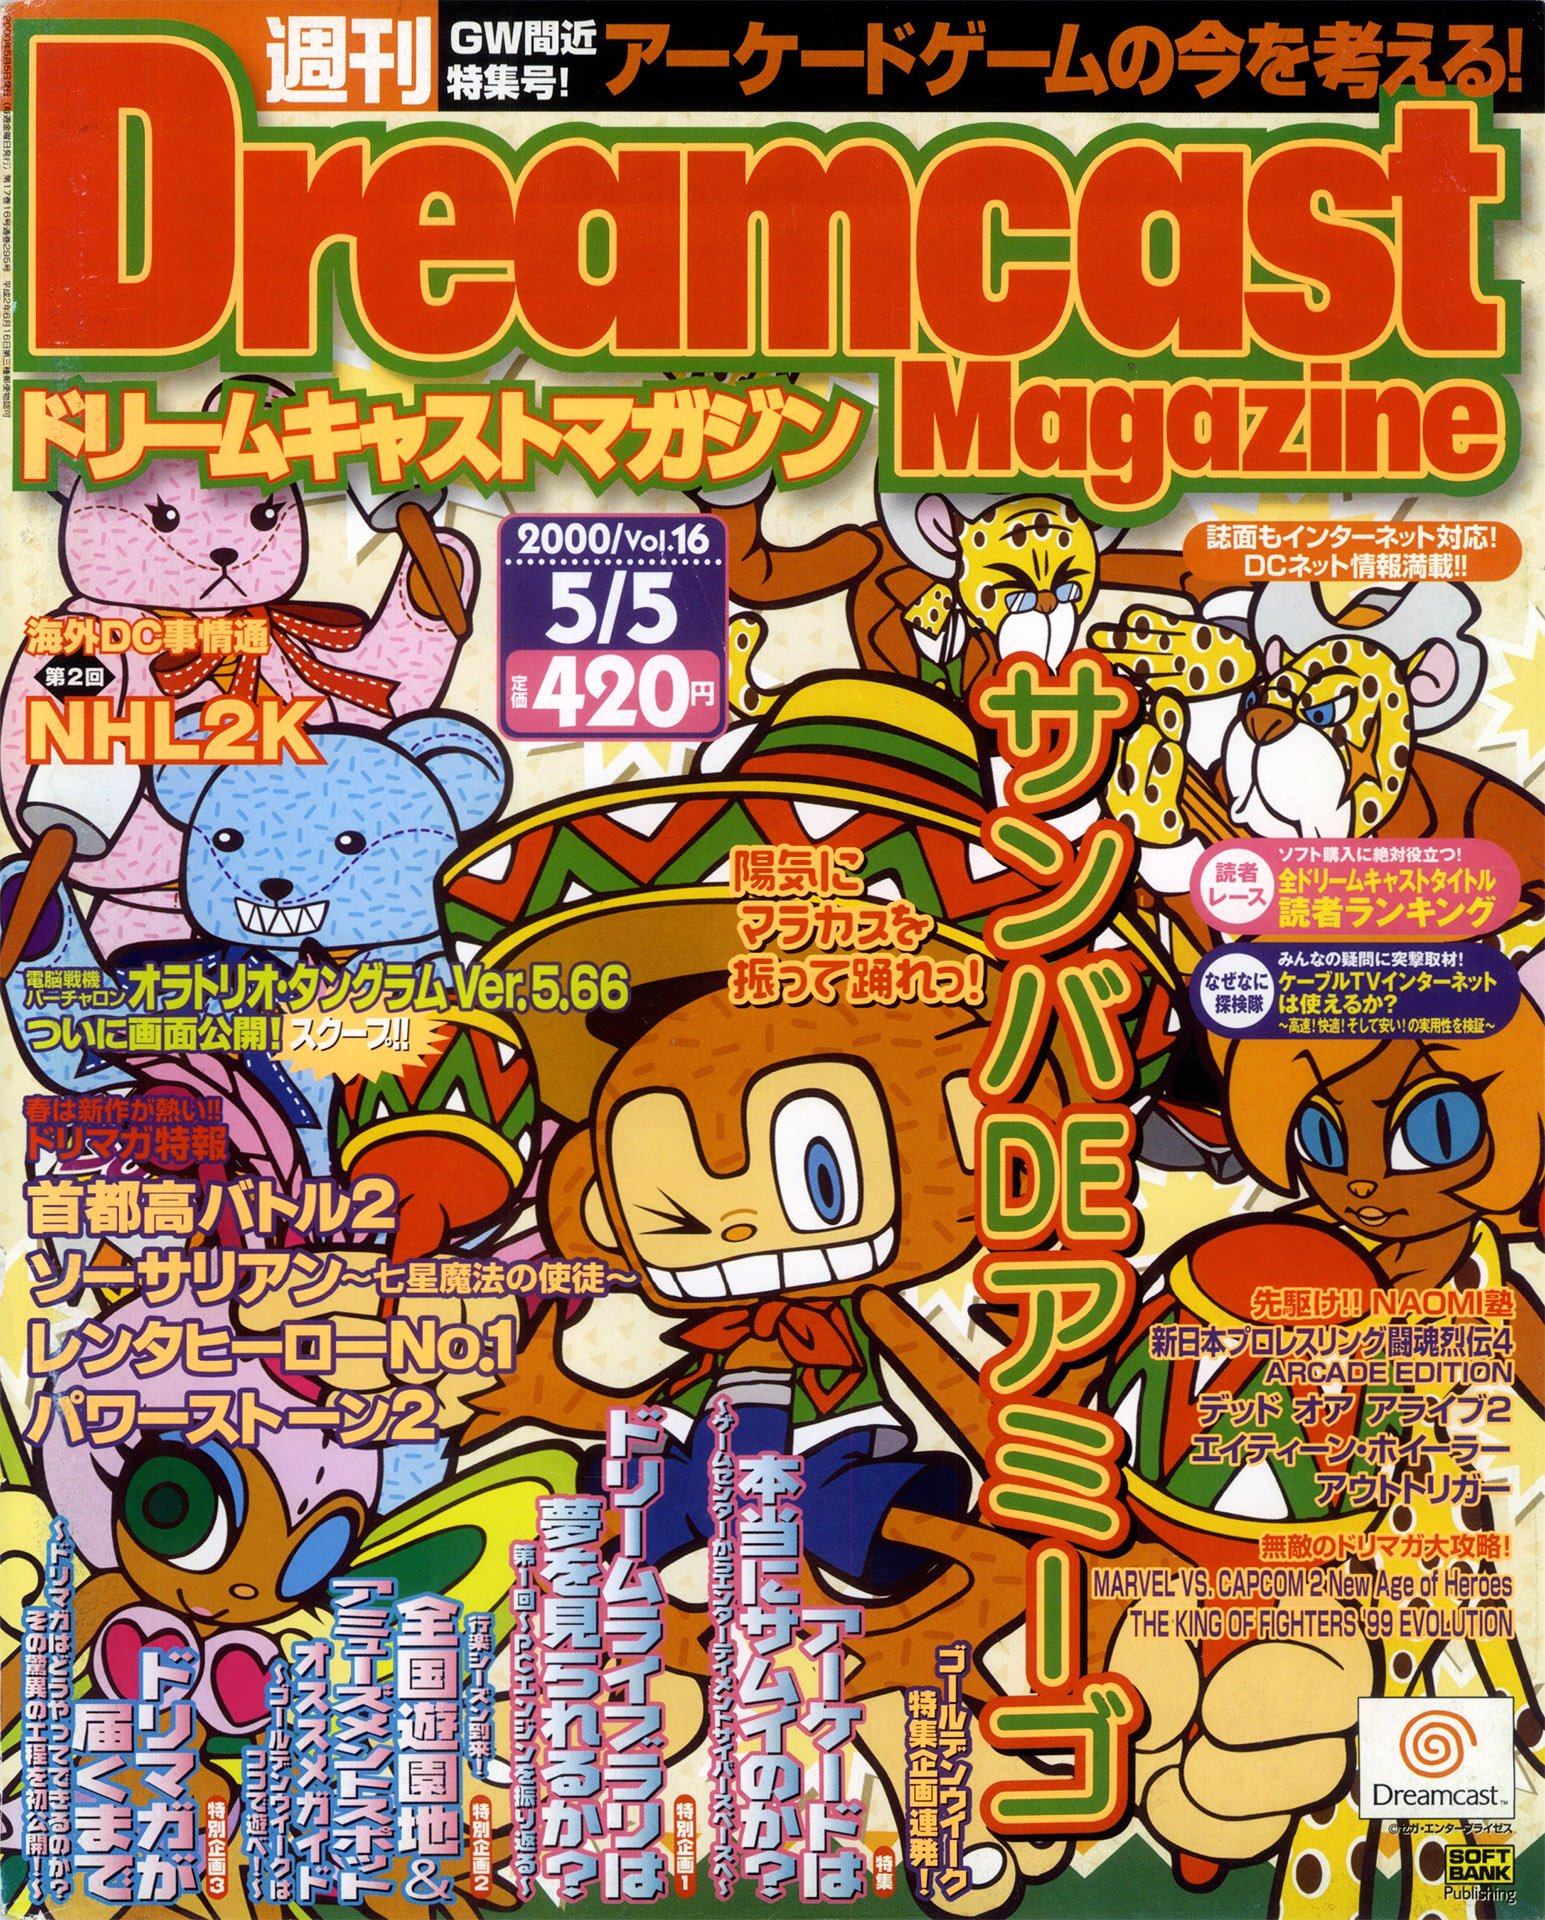 Dreamcast Magazine 068 (May 5, 2000)